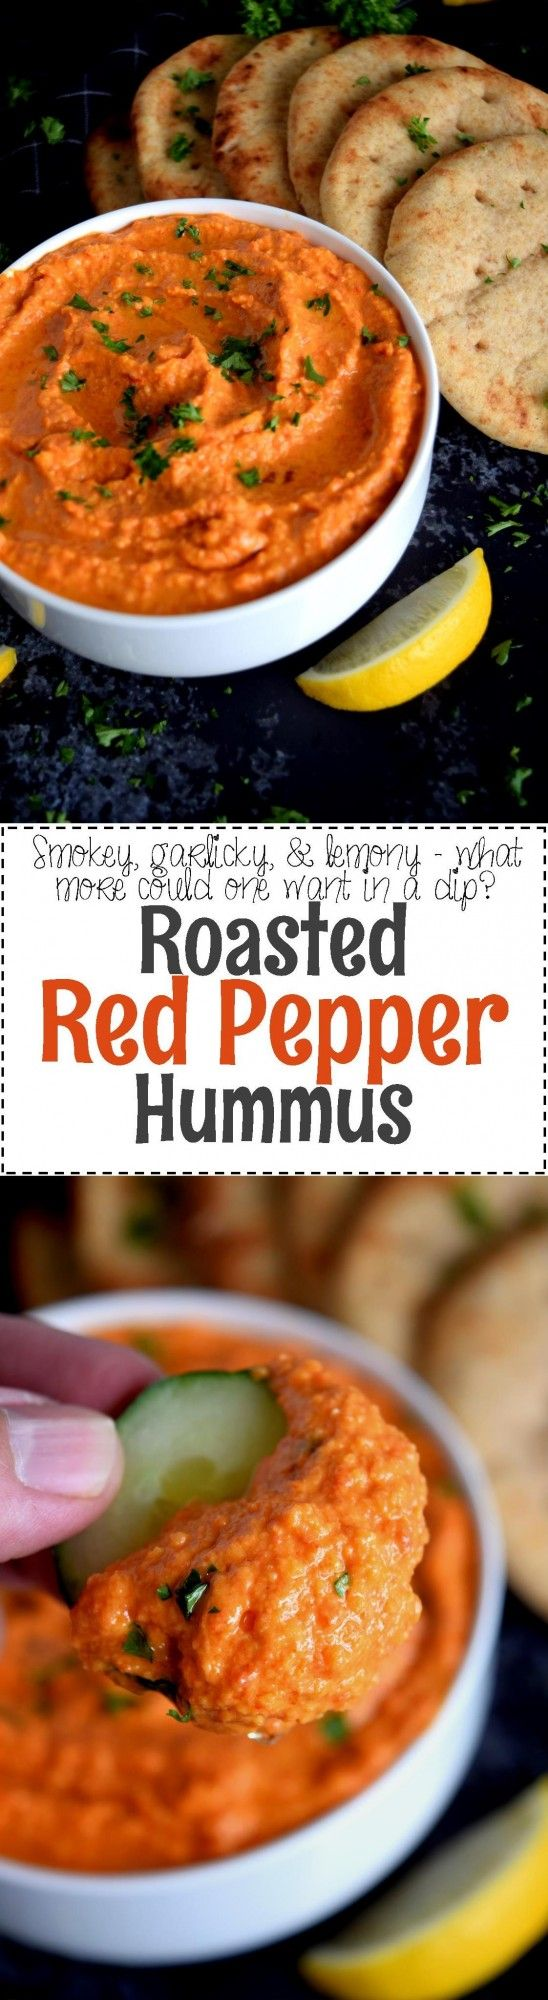 Roasted Red Pepper Hummus - Lord Byron's Kitchen